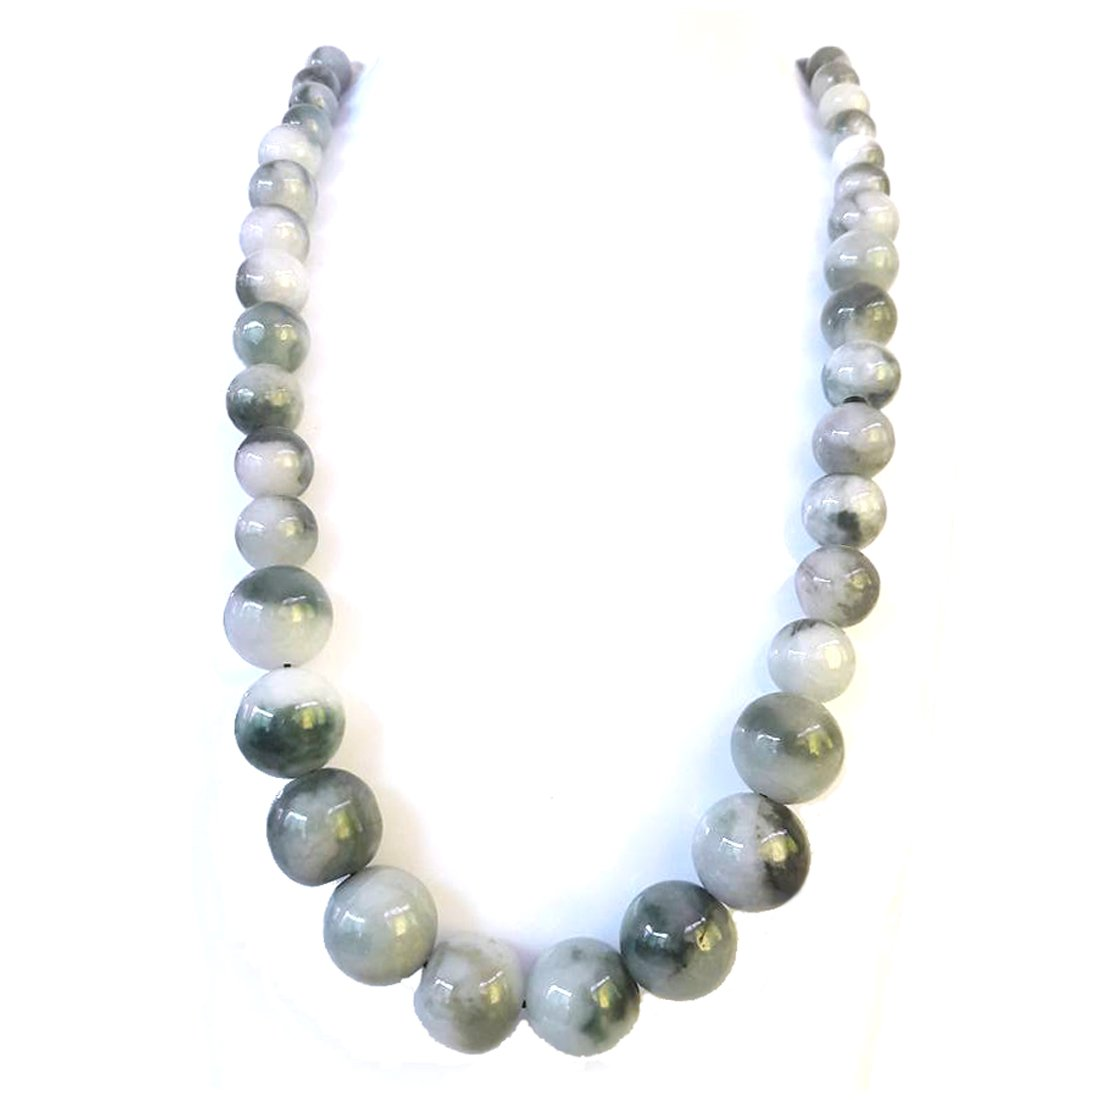 18 Natural Jadeite Jade Necklace Beads for Women Strand Mixed Size and Color KaratGem Jewelry MixedJNL